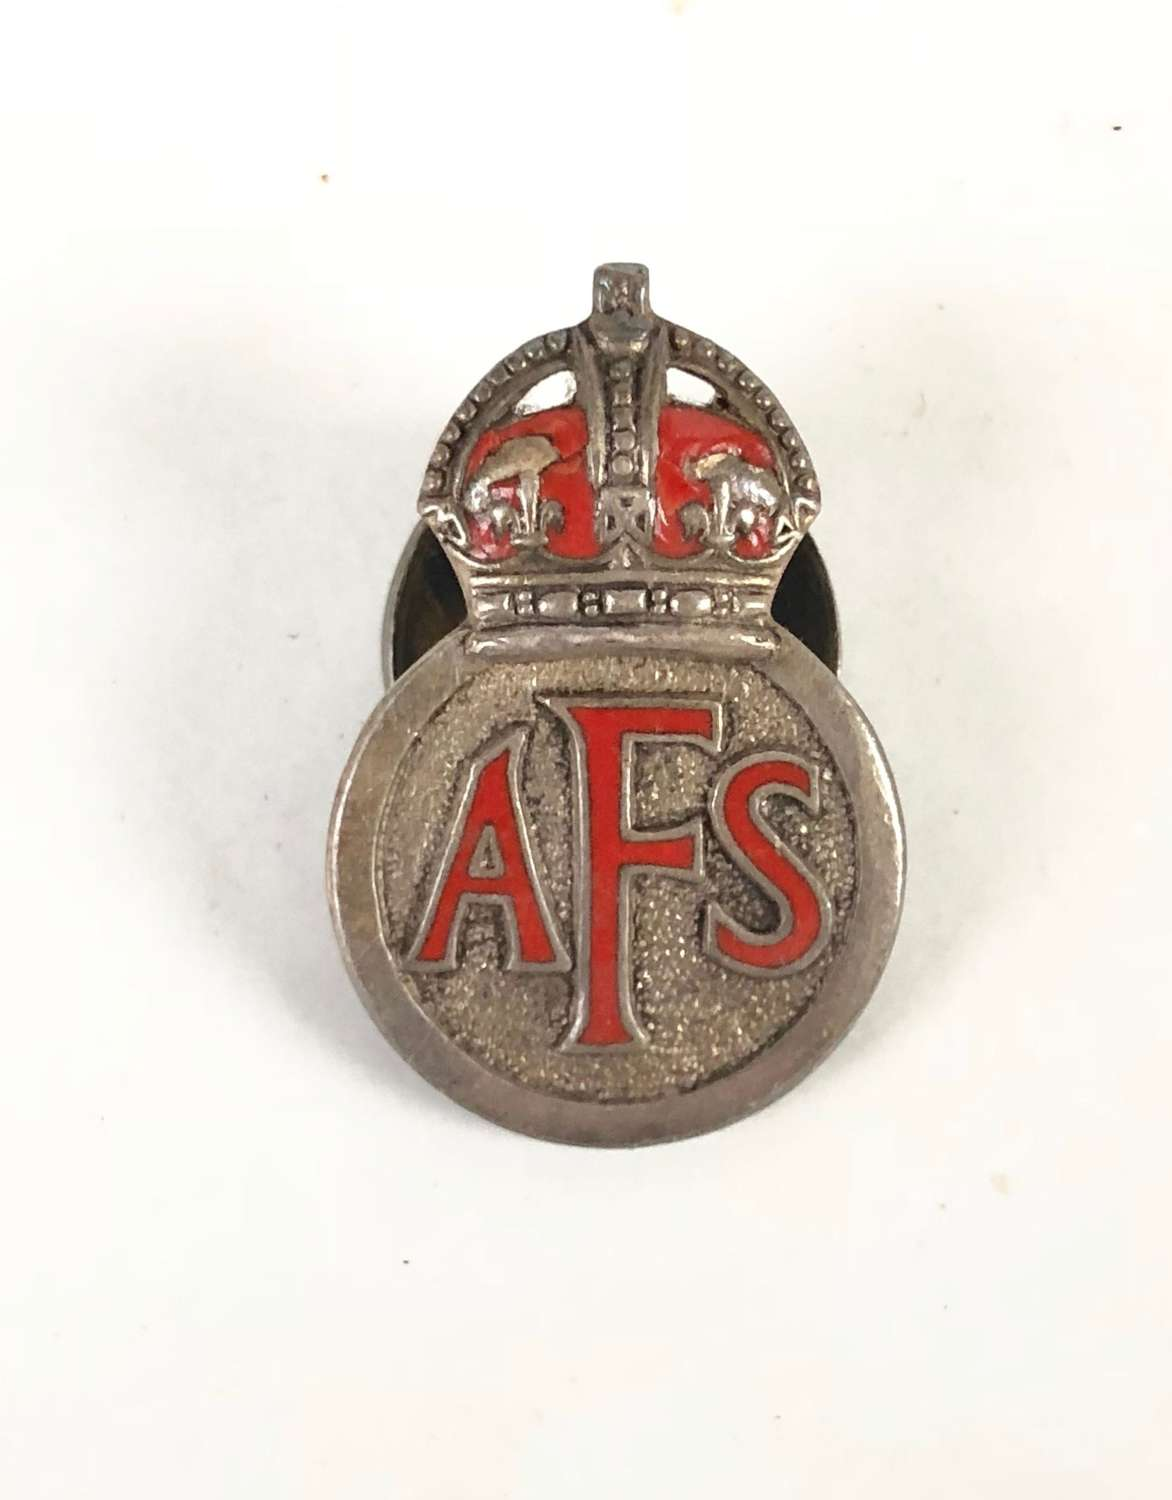 WW2 Auxiliary Fire Service first issue sterling silver AFS badge.